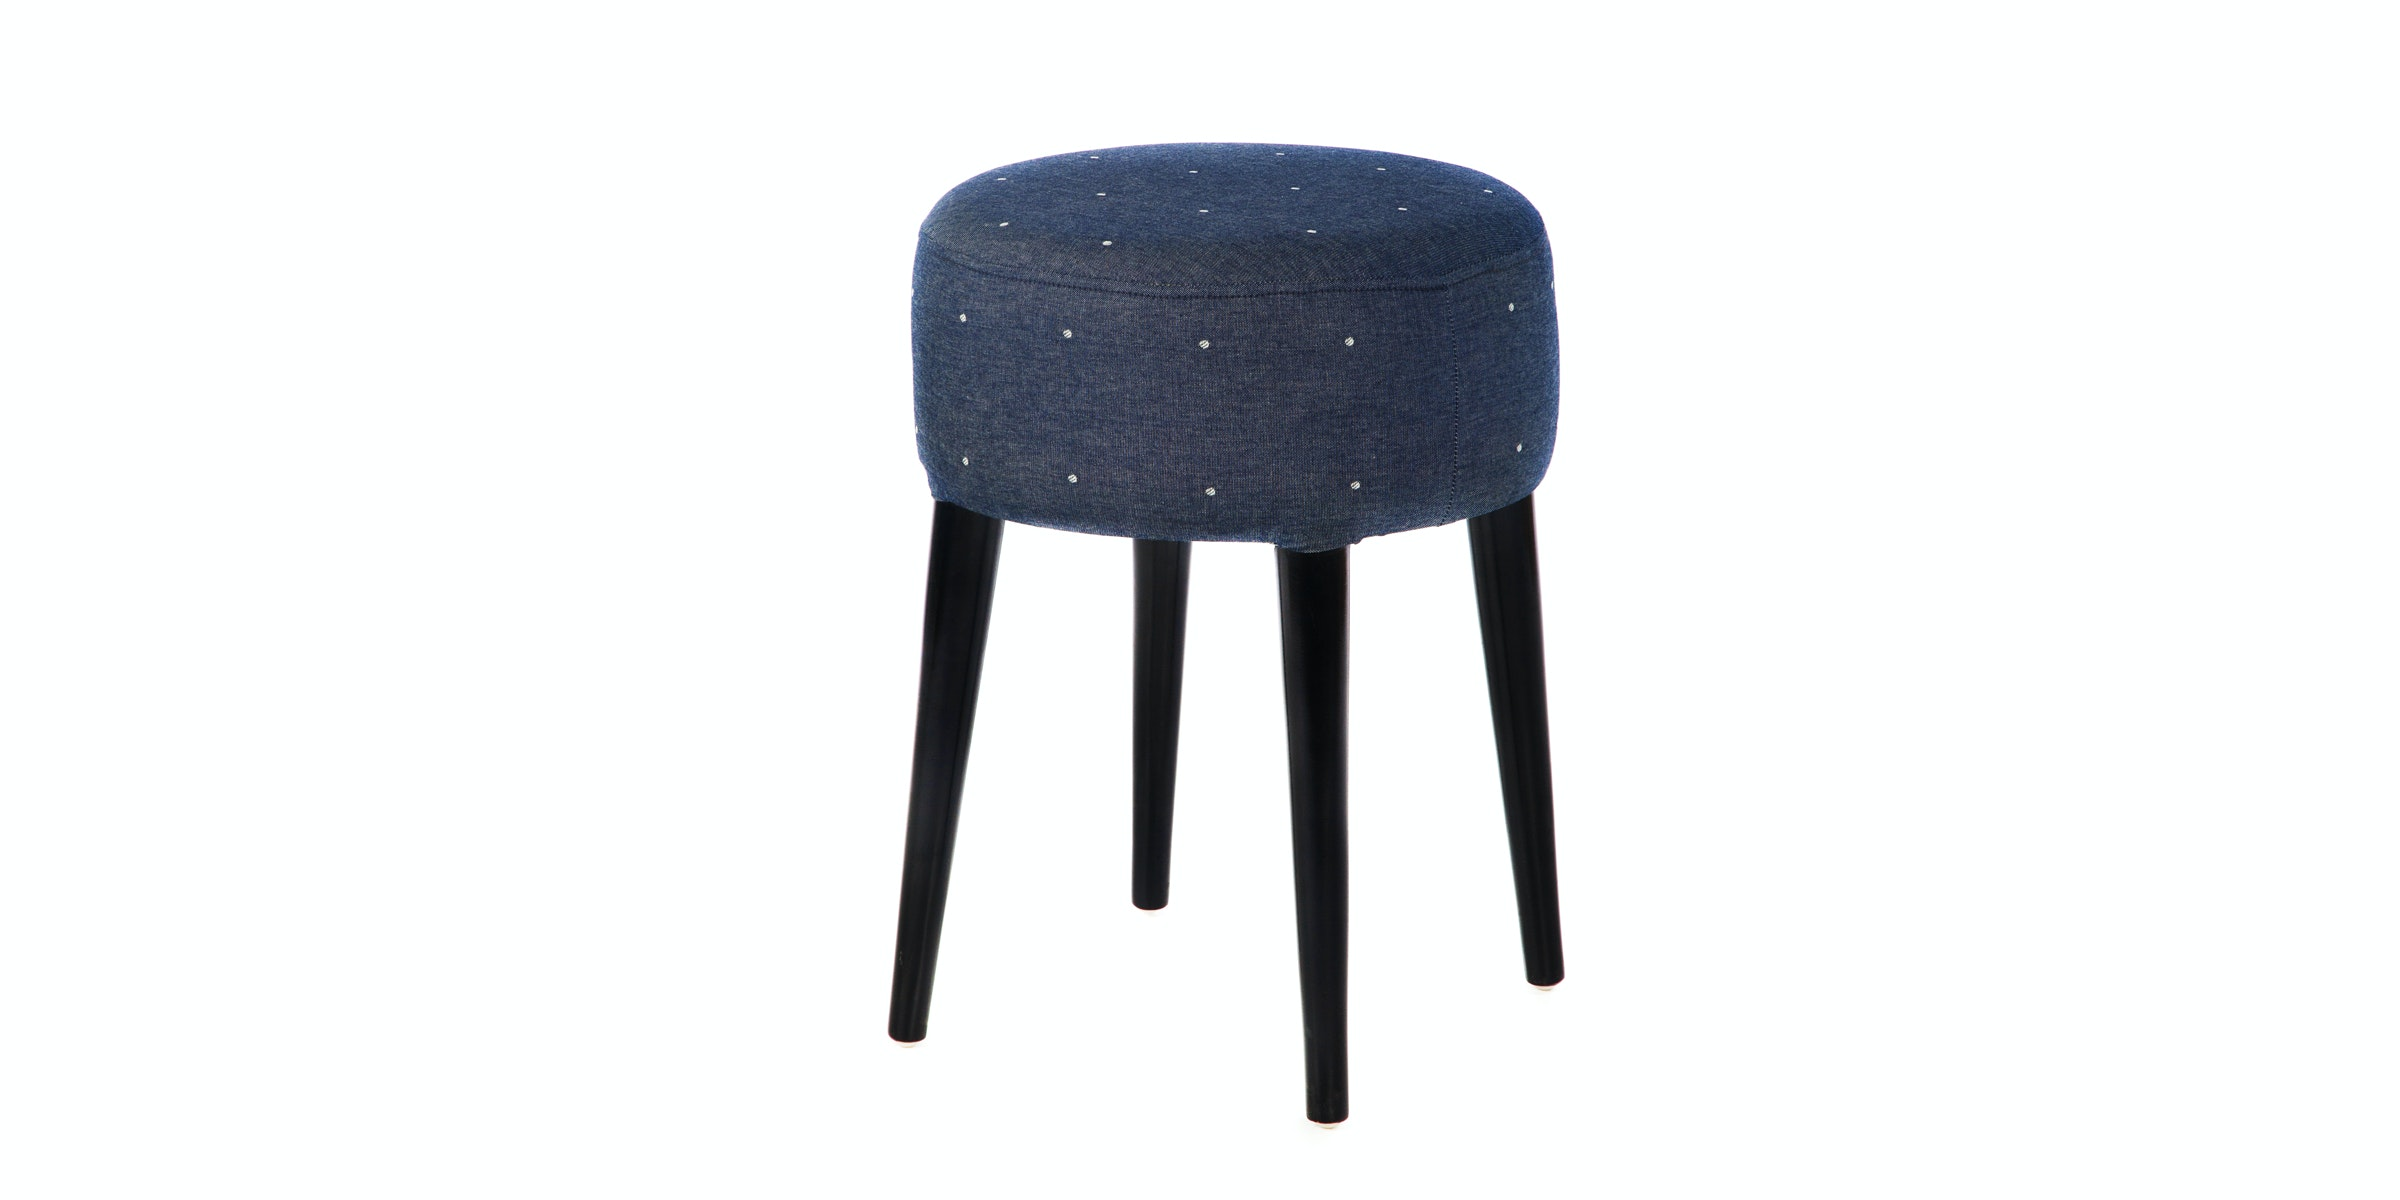 Seamus Furniture Polka Jeans Round Stool